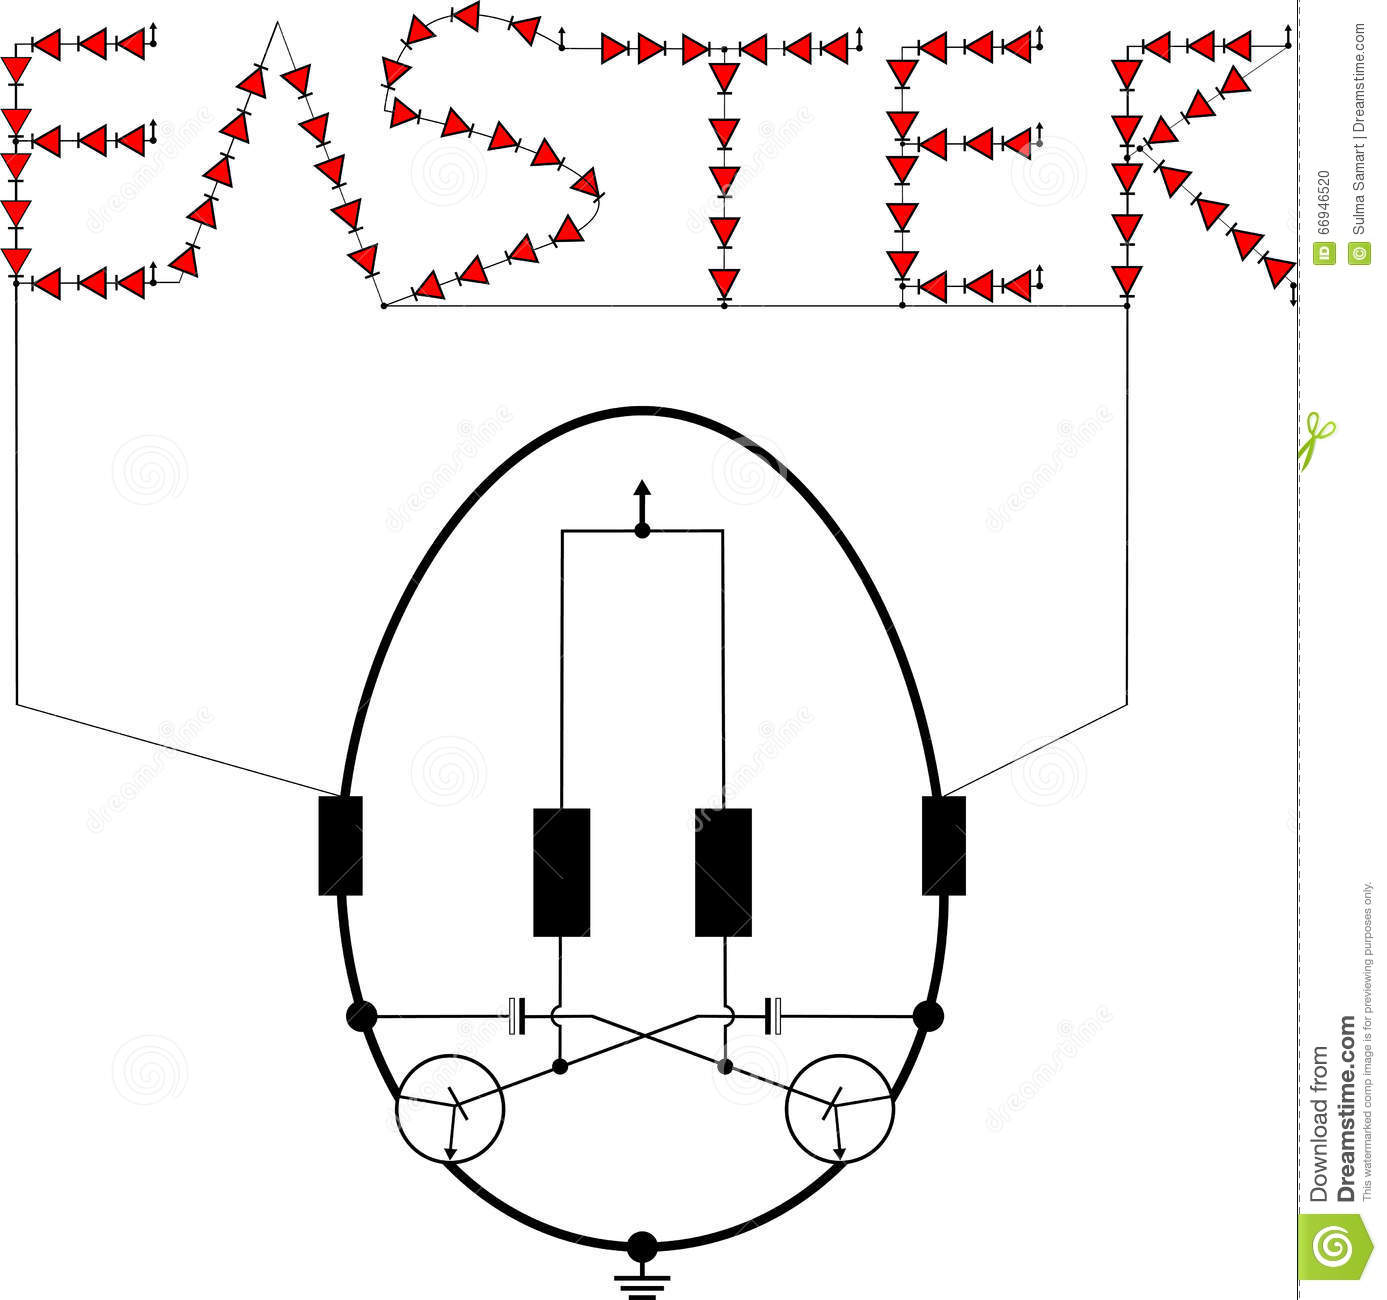 Flashing Light Schematic Diagrams Memo Board Circuit Led Easter Egg Stock Vector Illustration Of Intermittent